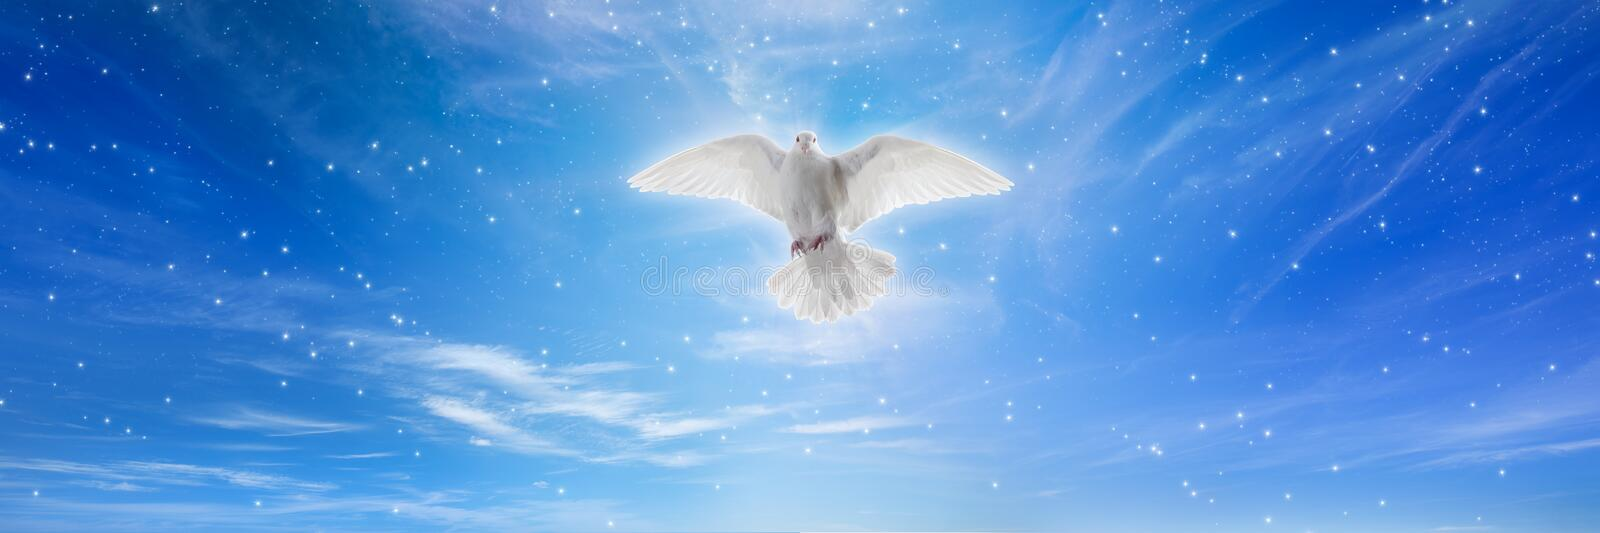 White dove in blue skies royalty free stock photo